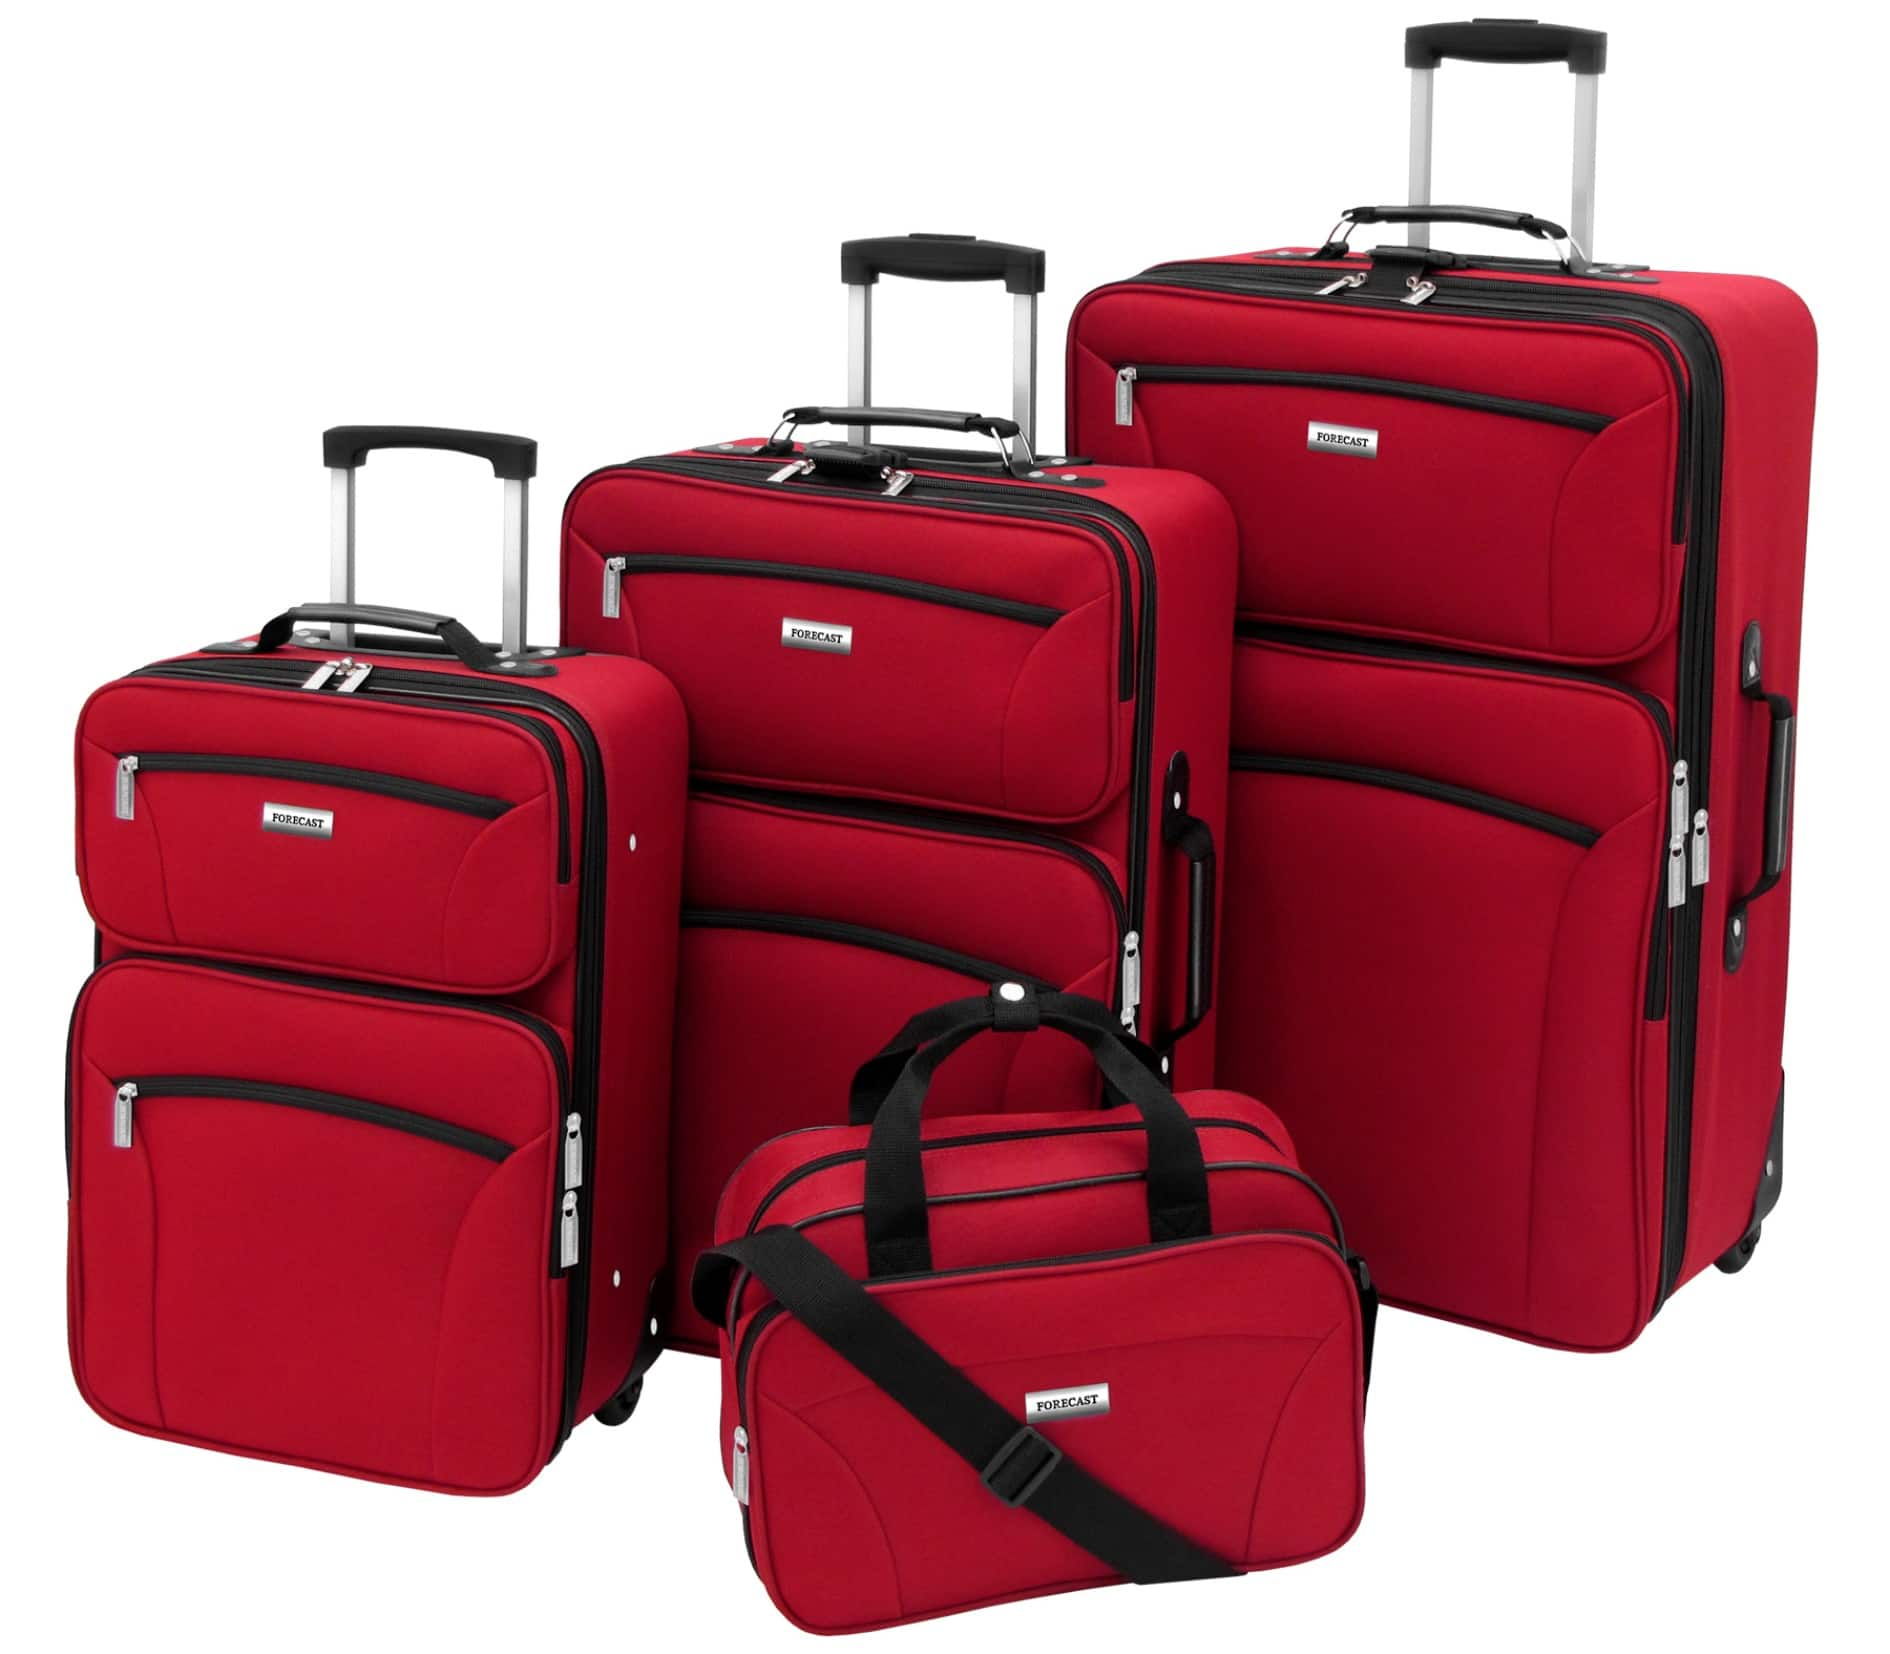 Forecast Barbados 4 Piece Set Luggage - Black $179 or lower + $131 or more SYW points (multiple colors) @ Sears  (Points Roll)